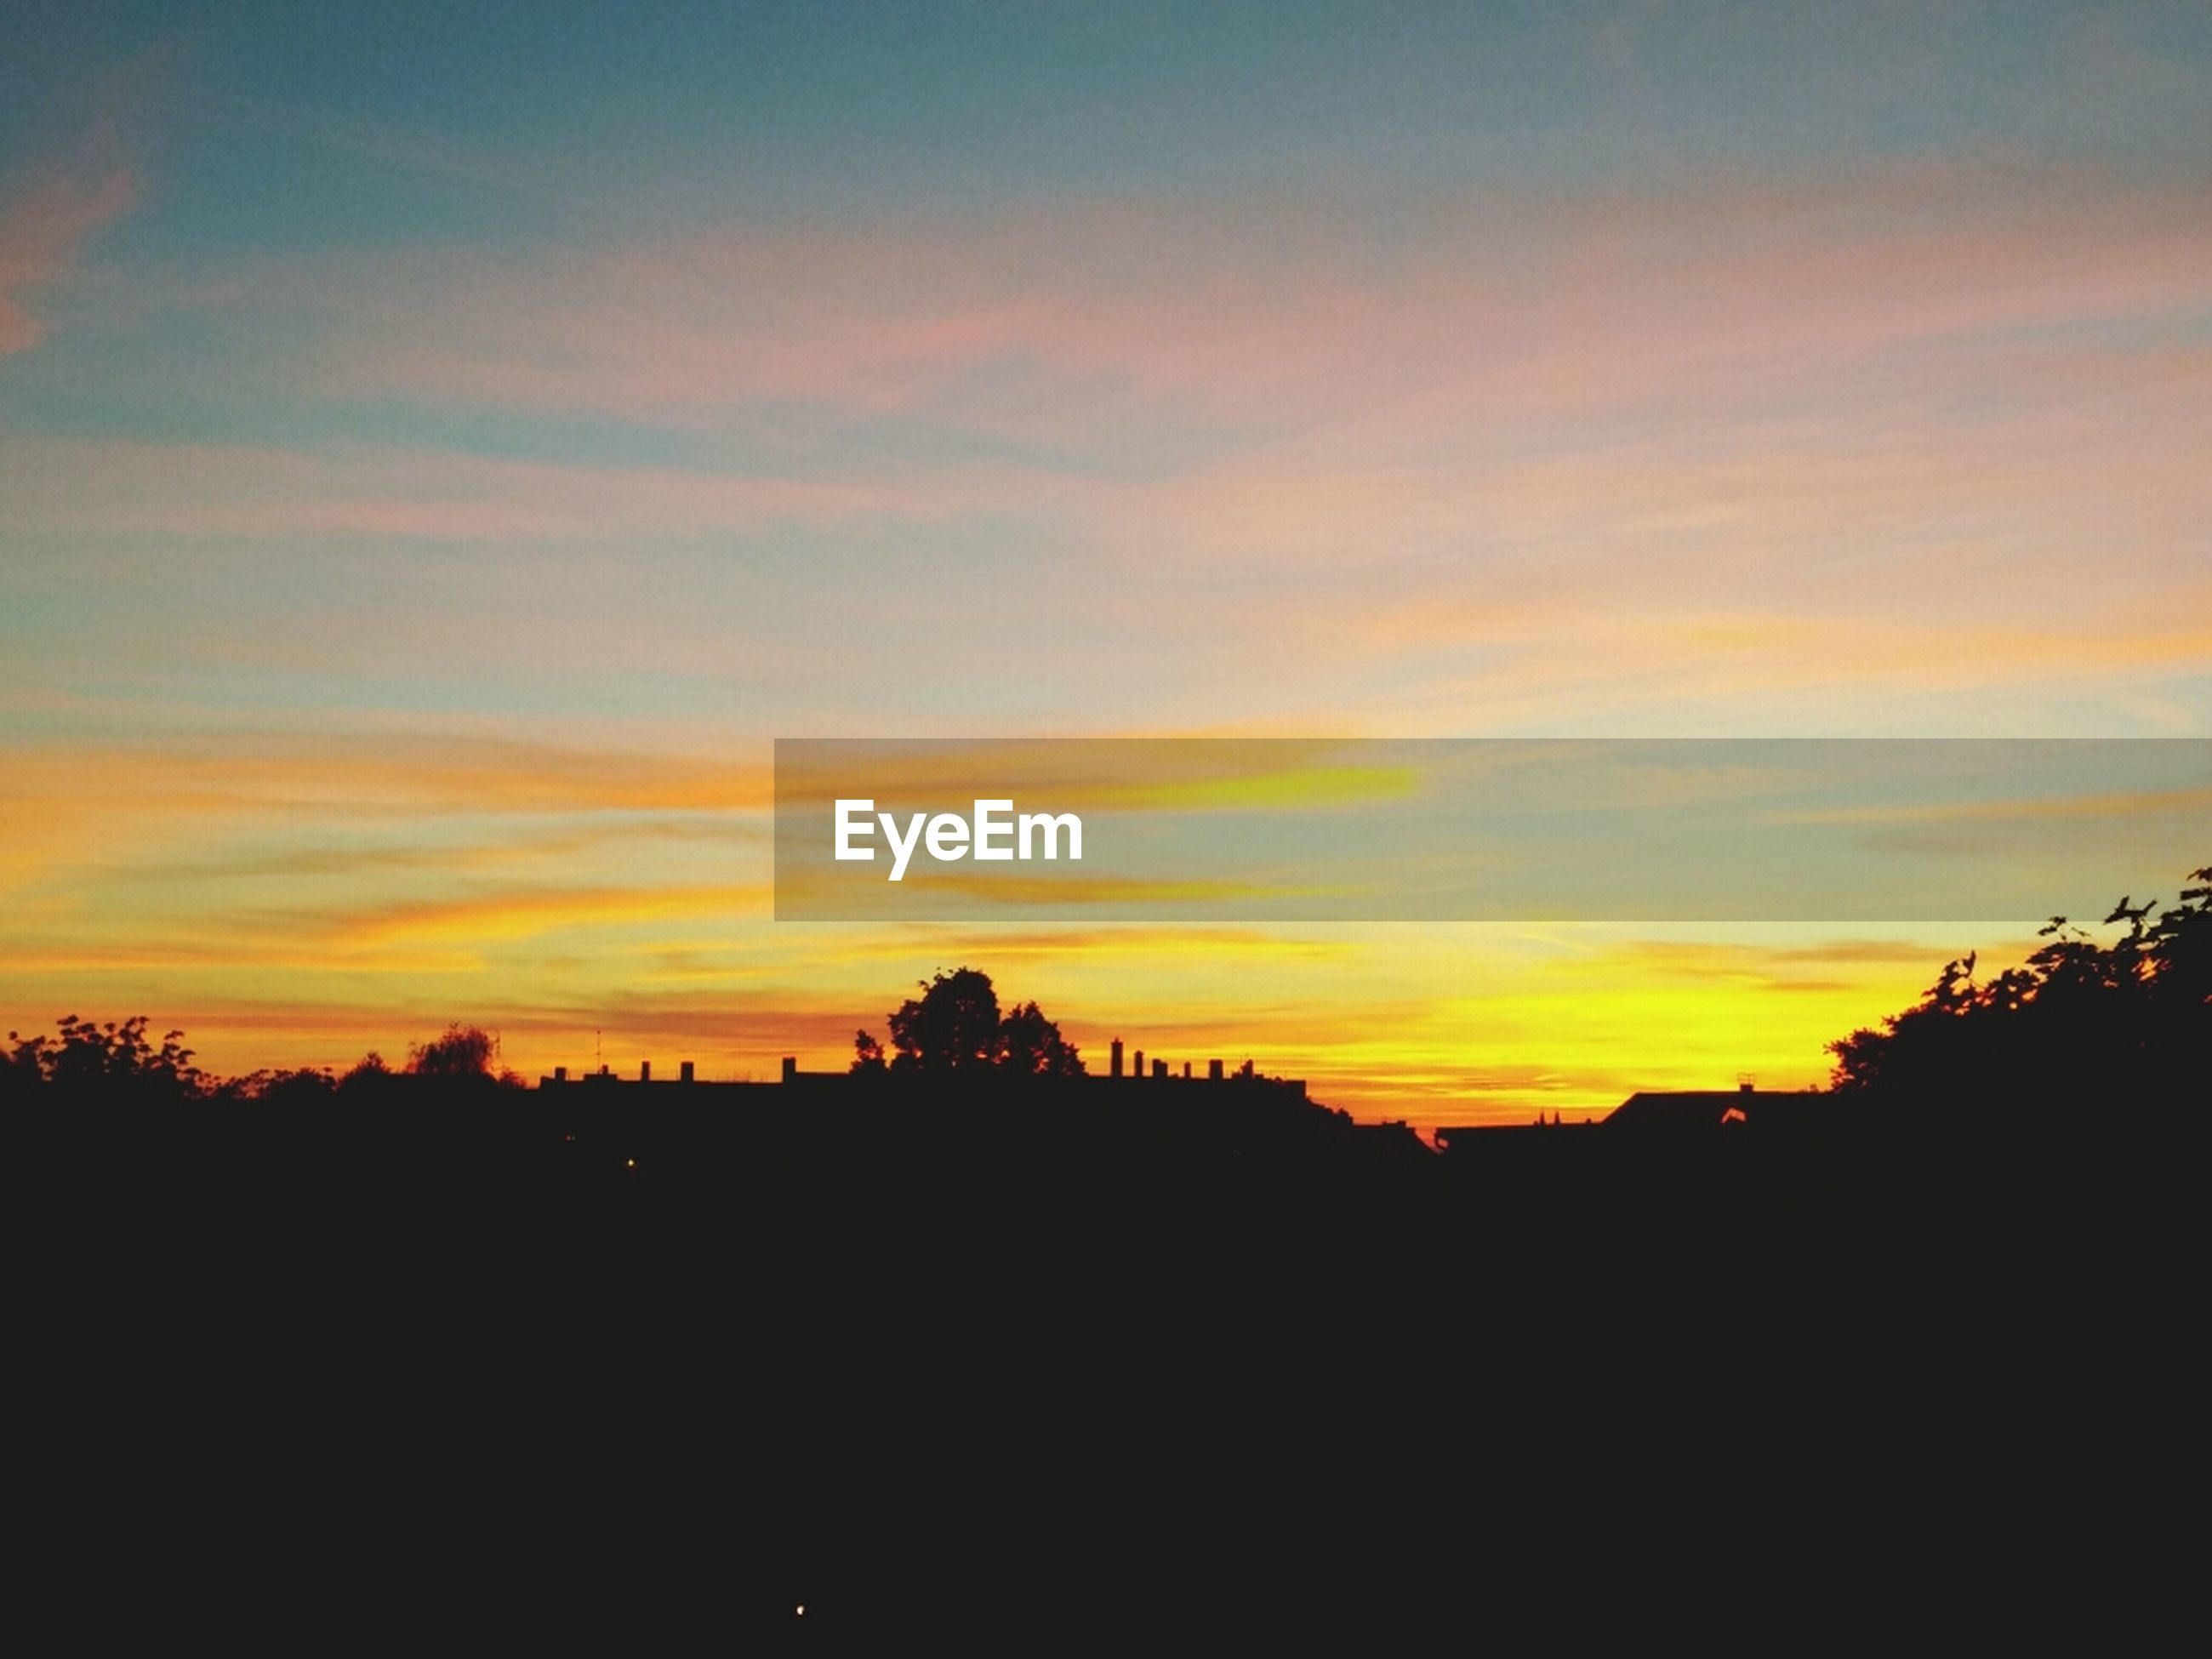 sunset, silhouette, sky, orange color, beauty in nature, scenics, tree, tranquil scene, tranquility, cloud - sky, nature, idyllic, landscape, built structure, outdoors, cloud, building exterior, no people, copy space, architecture